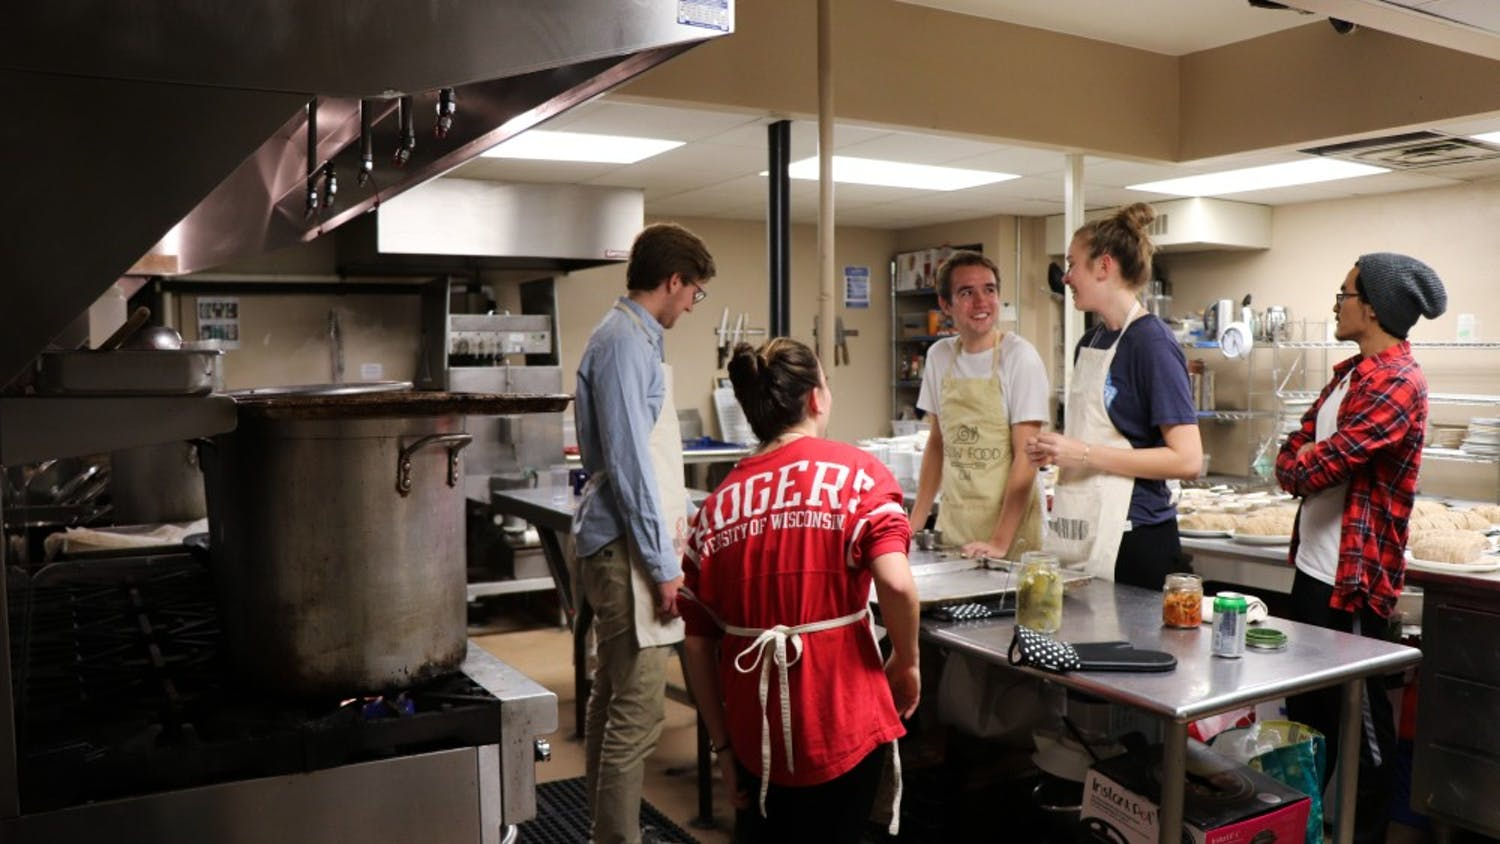 Slow food volunteers prepare a meal in the basement of the crossing. They see themselves as resources,not solutions to food insecurity.